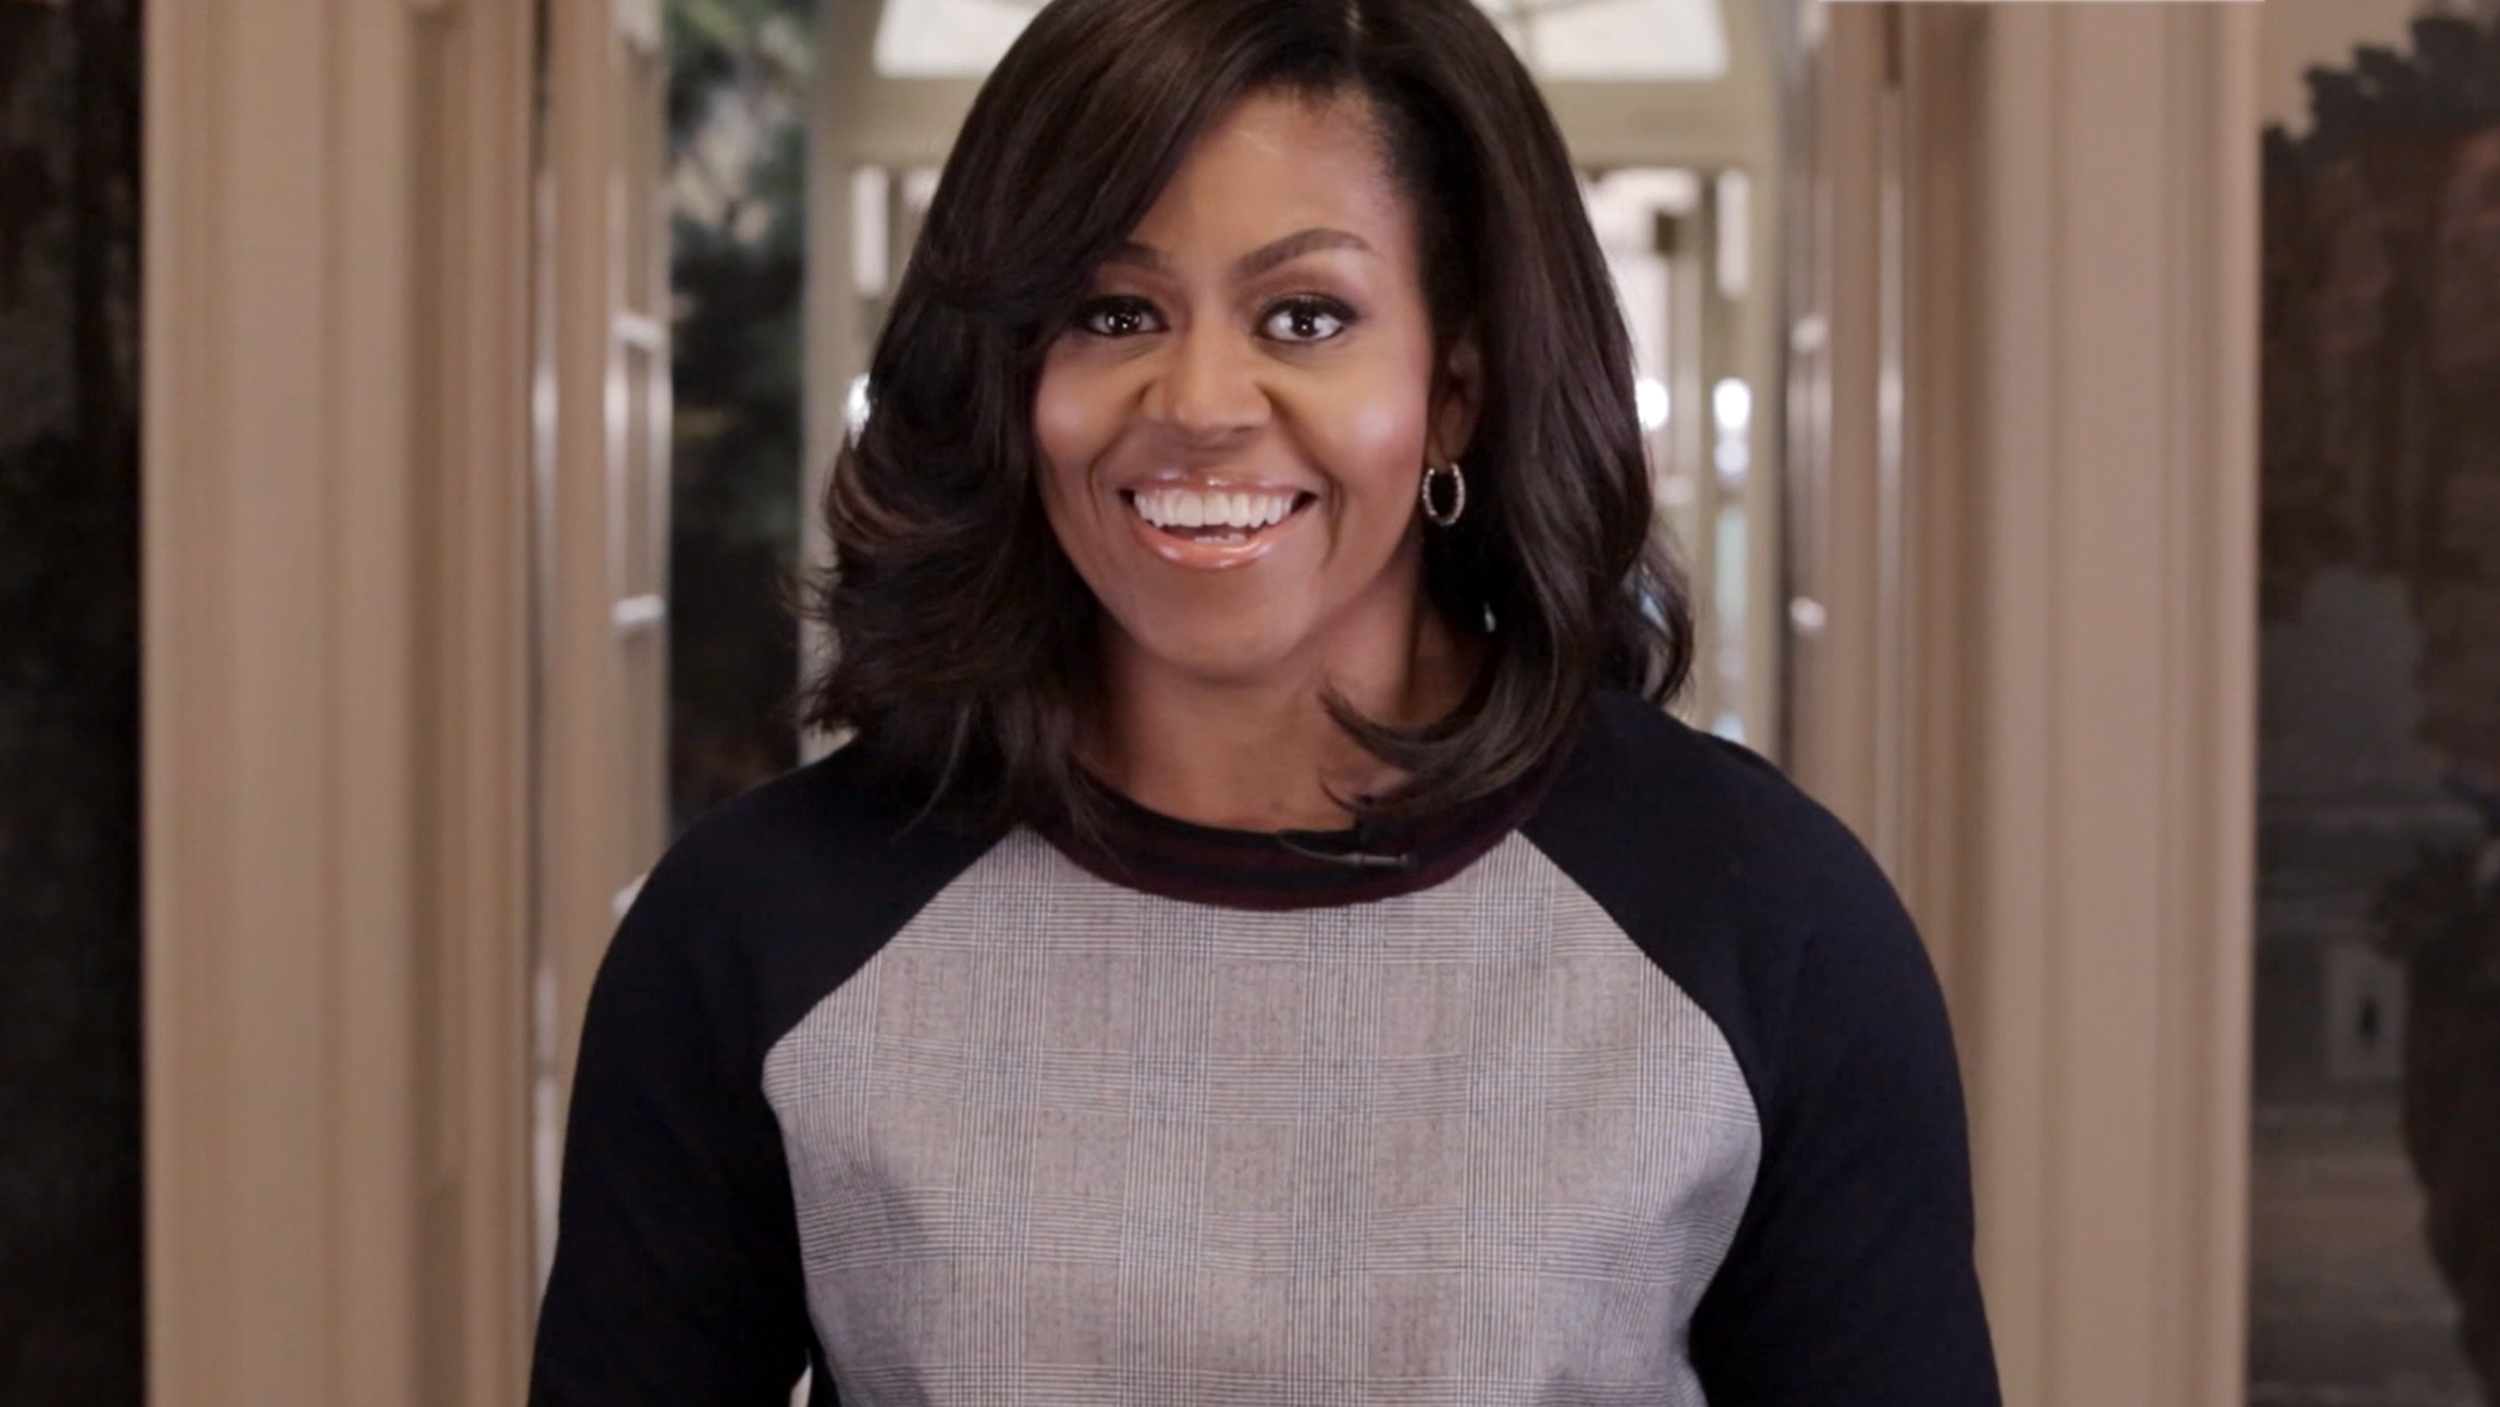 Michelle Obama planted beets around the White House 03/17/2011 15